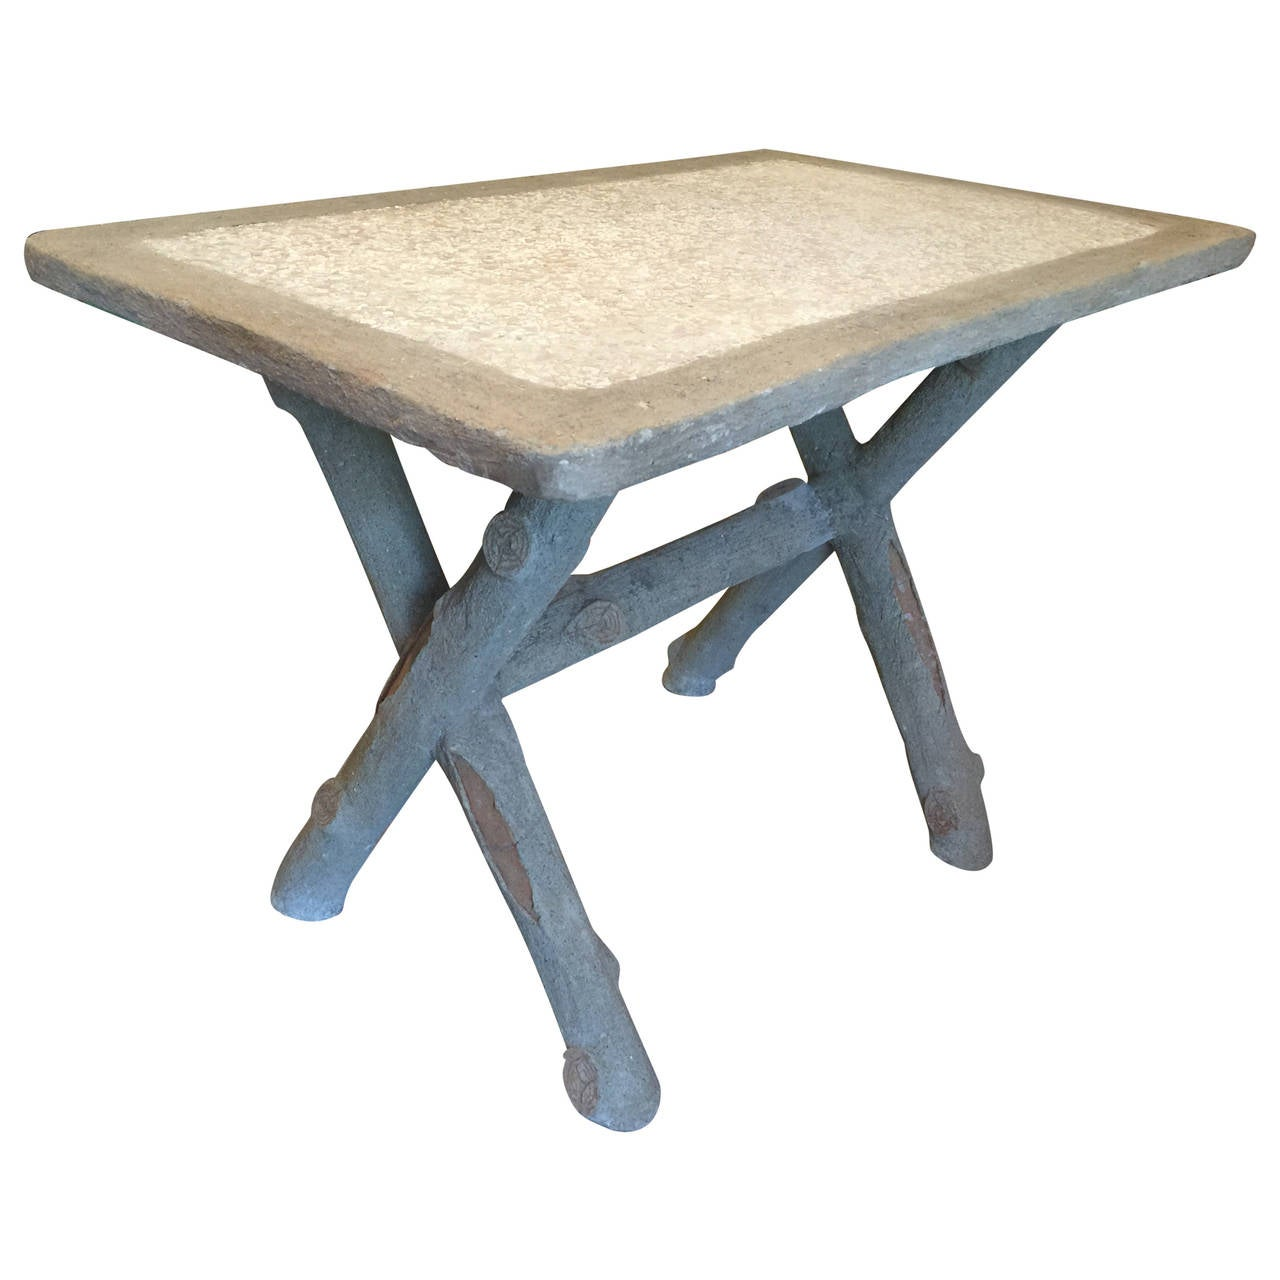 Vintage French Faux Bois Table For Sale at 1stdibs ~ Table Bois Vintage